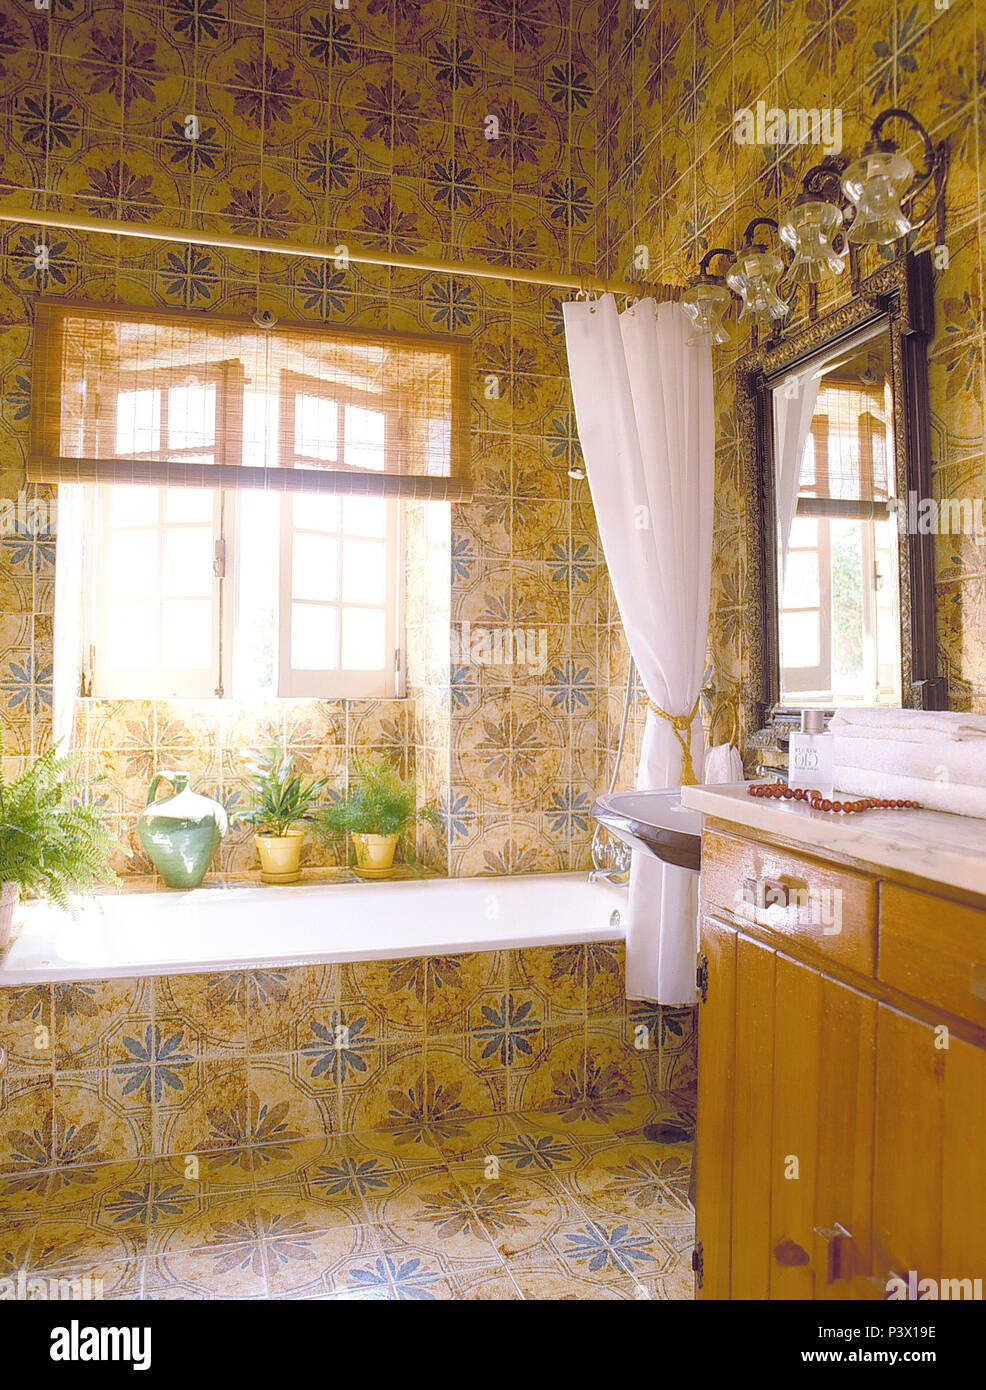 White Shower Curtain On Bath In Blue Yellow Tiled Bathroom With Open Windows Above The